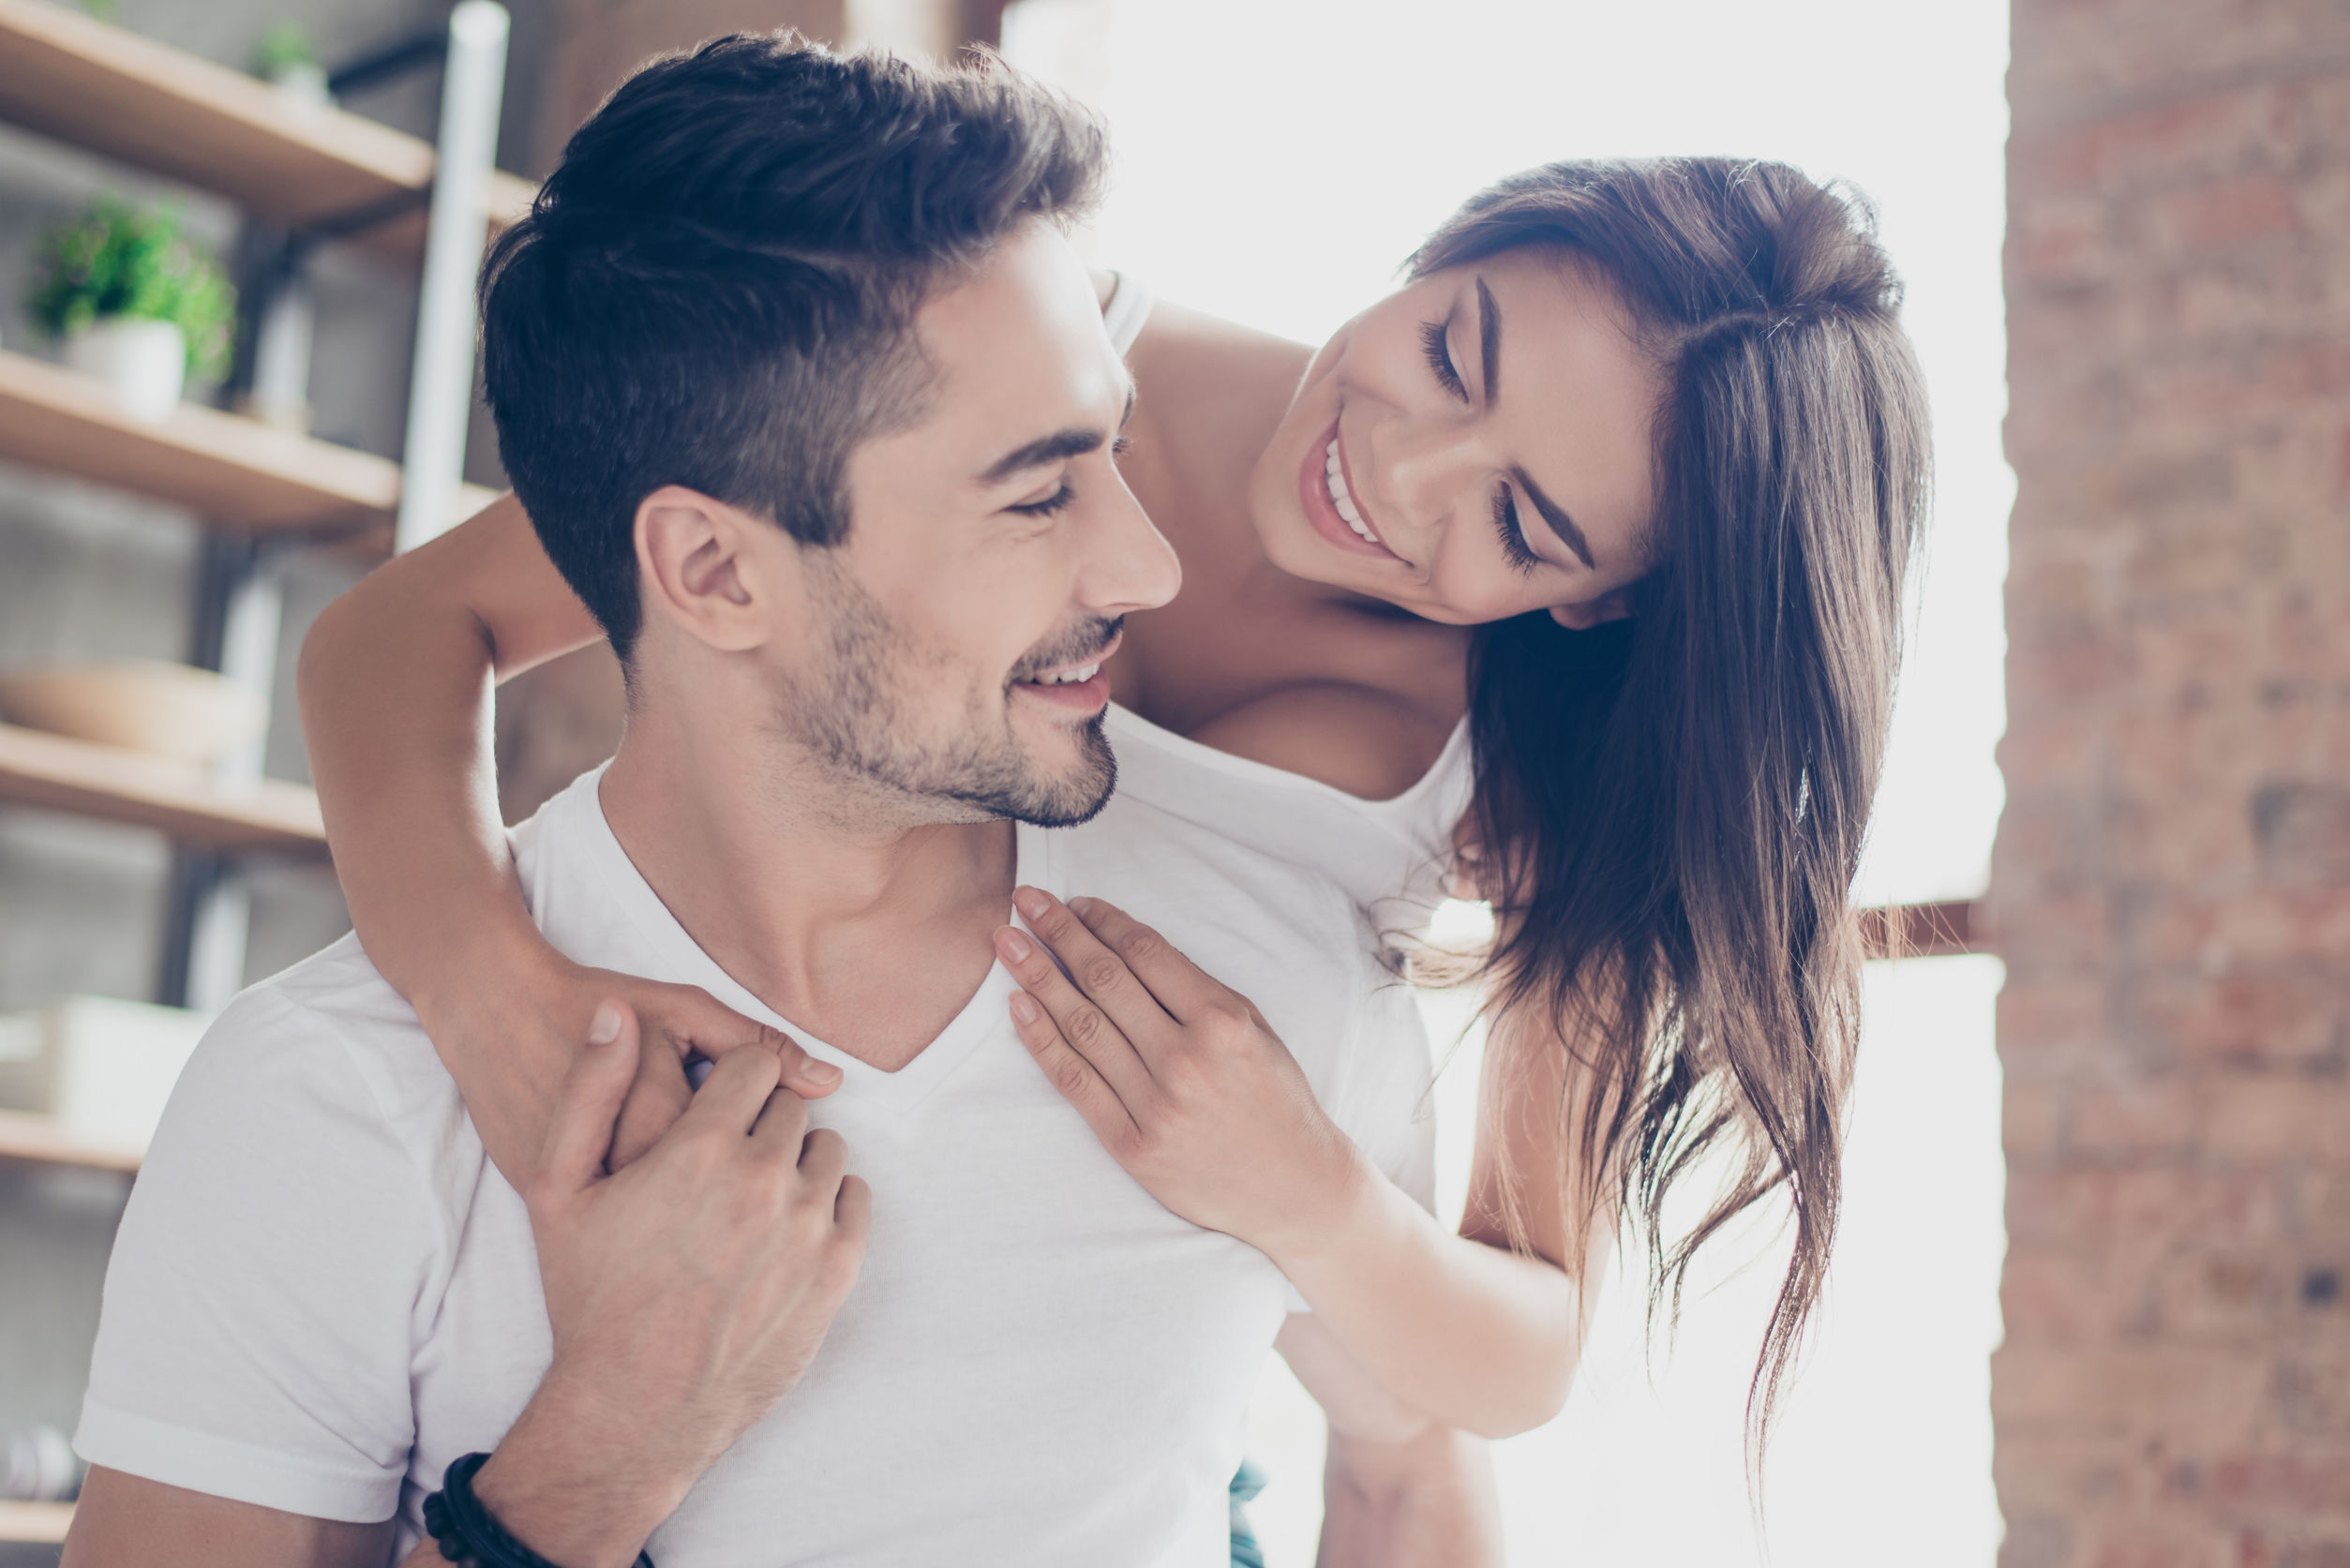 fix mistakes as a couple